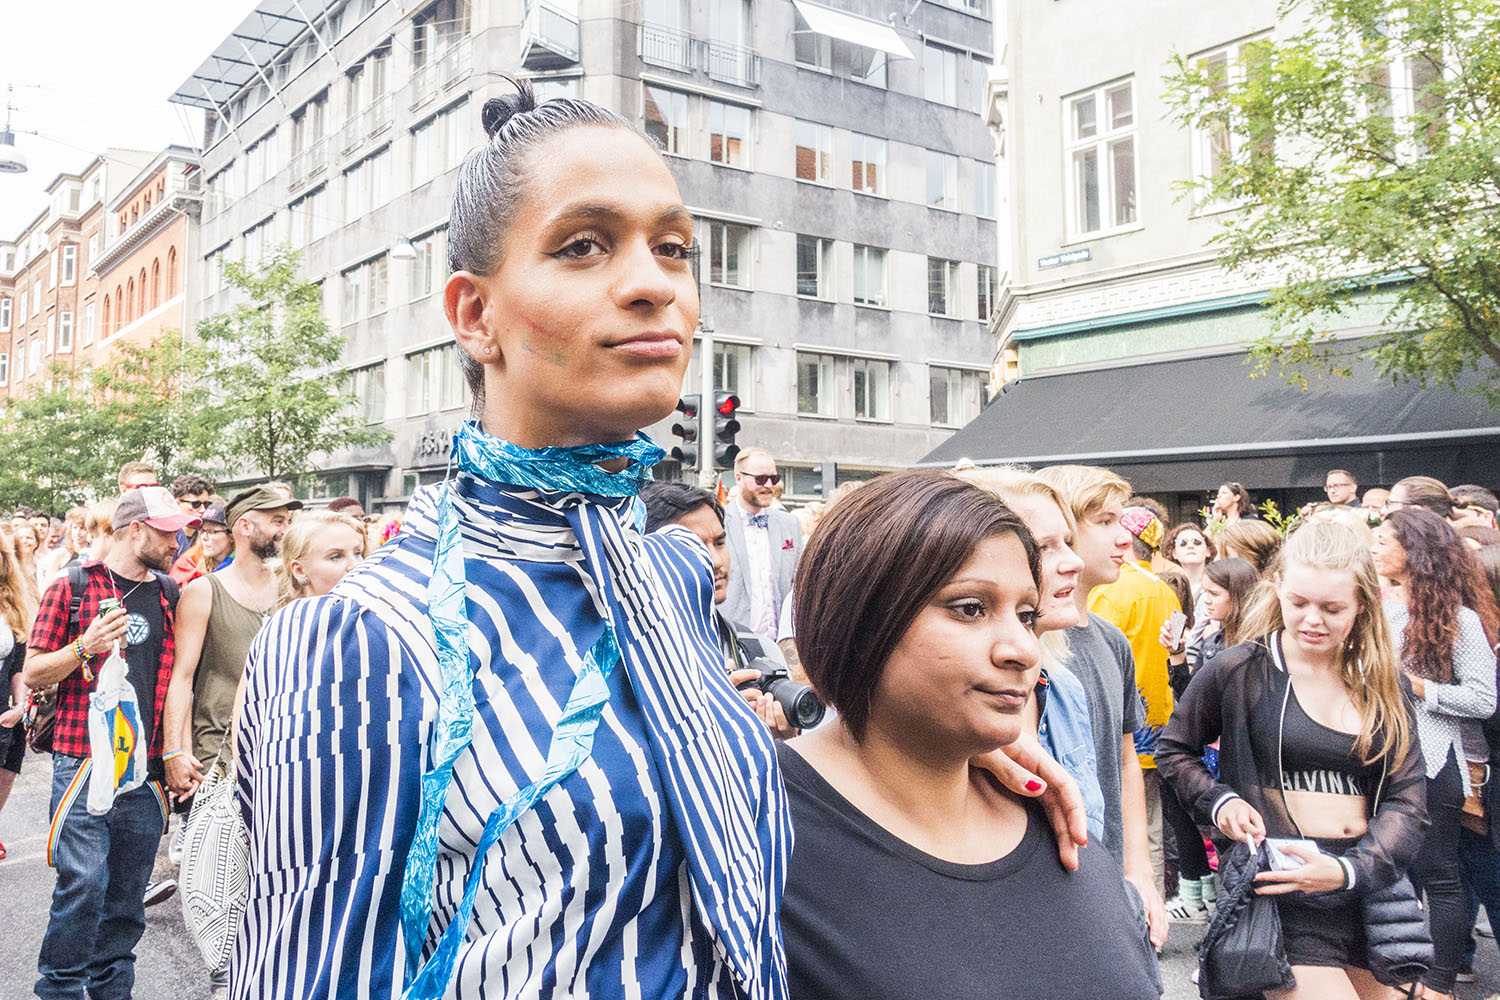 CphPride2016_HelenaLundquist_blog_7